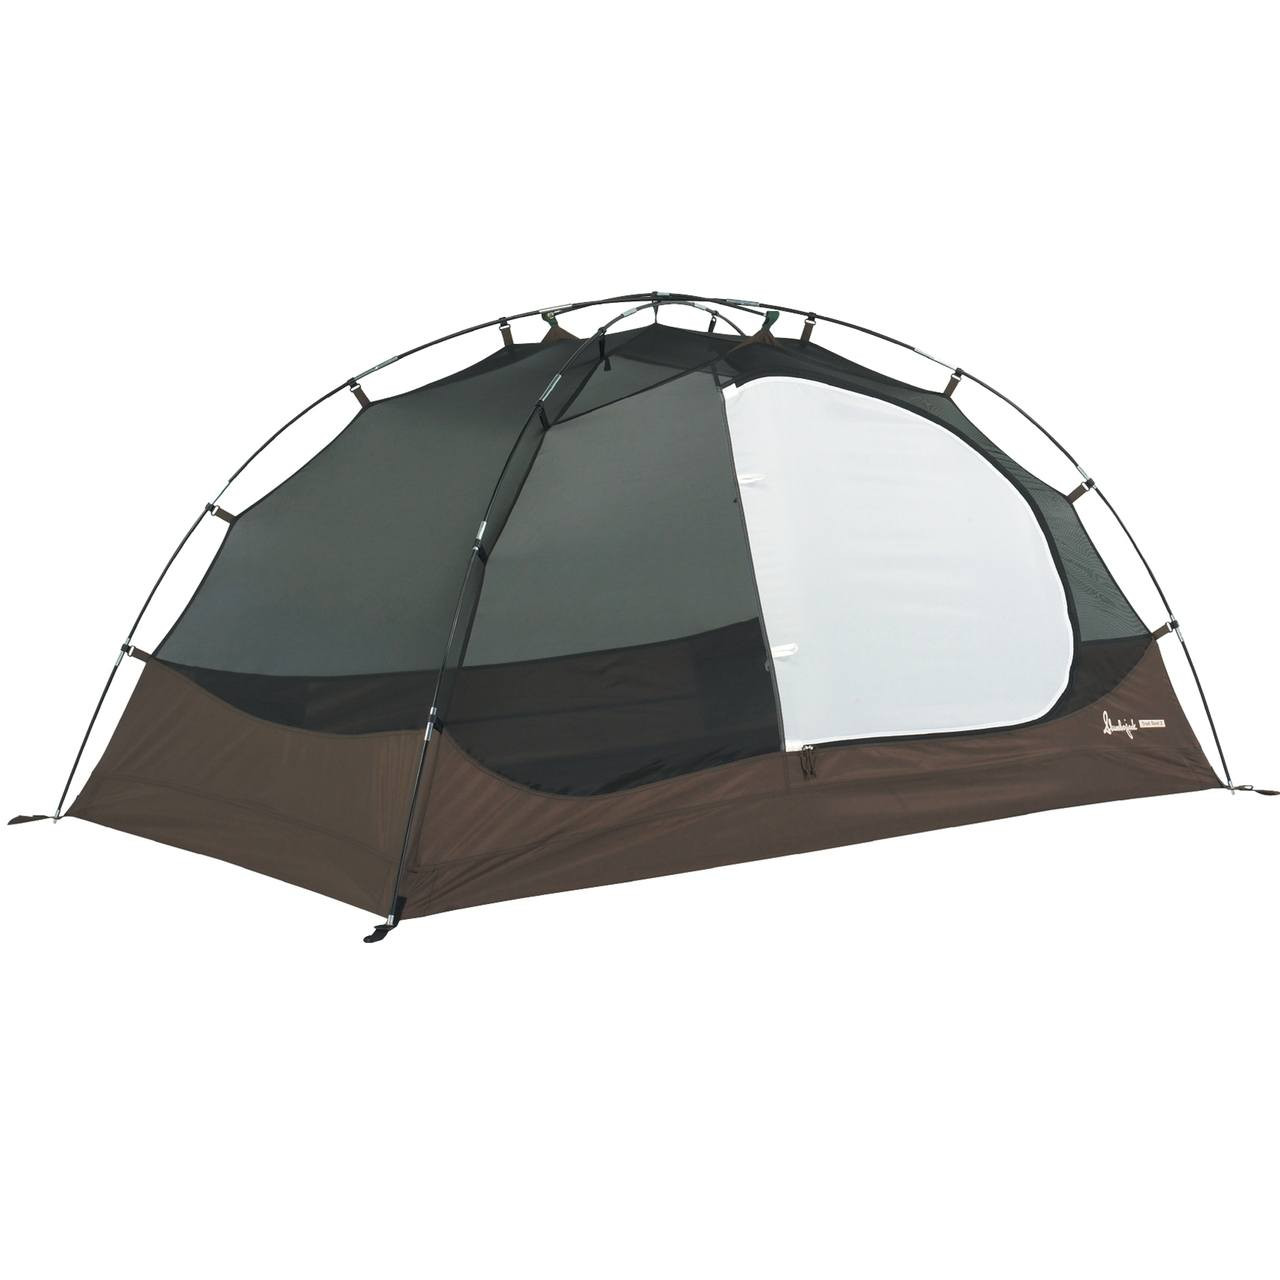 ... Trail Tent 2-Person Tent. Image 1  sc 1 st  Slumberjack & Slumberjack Trail Tent 2 | Backpacking 2-Person Tent | Camping